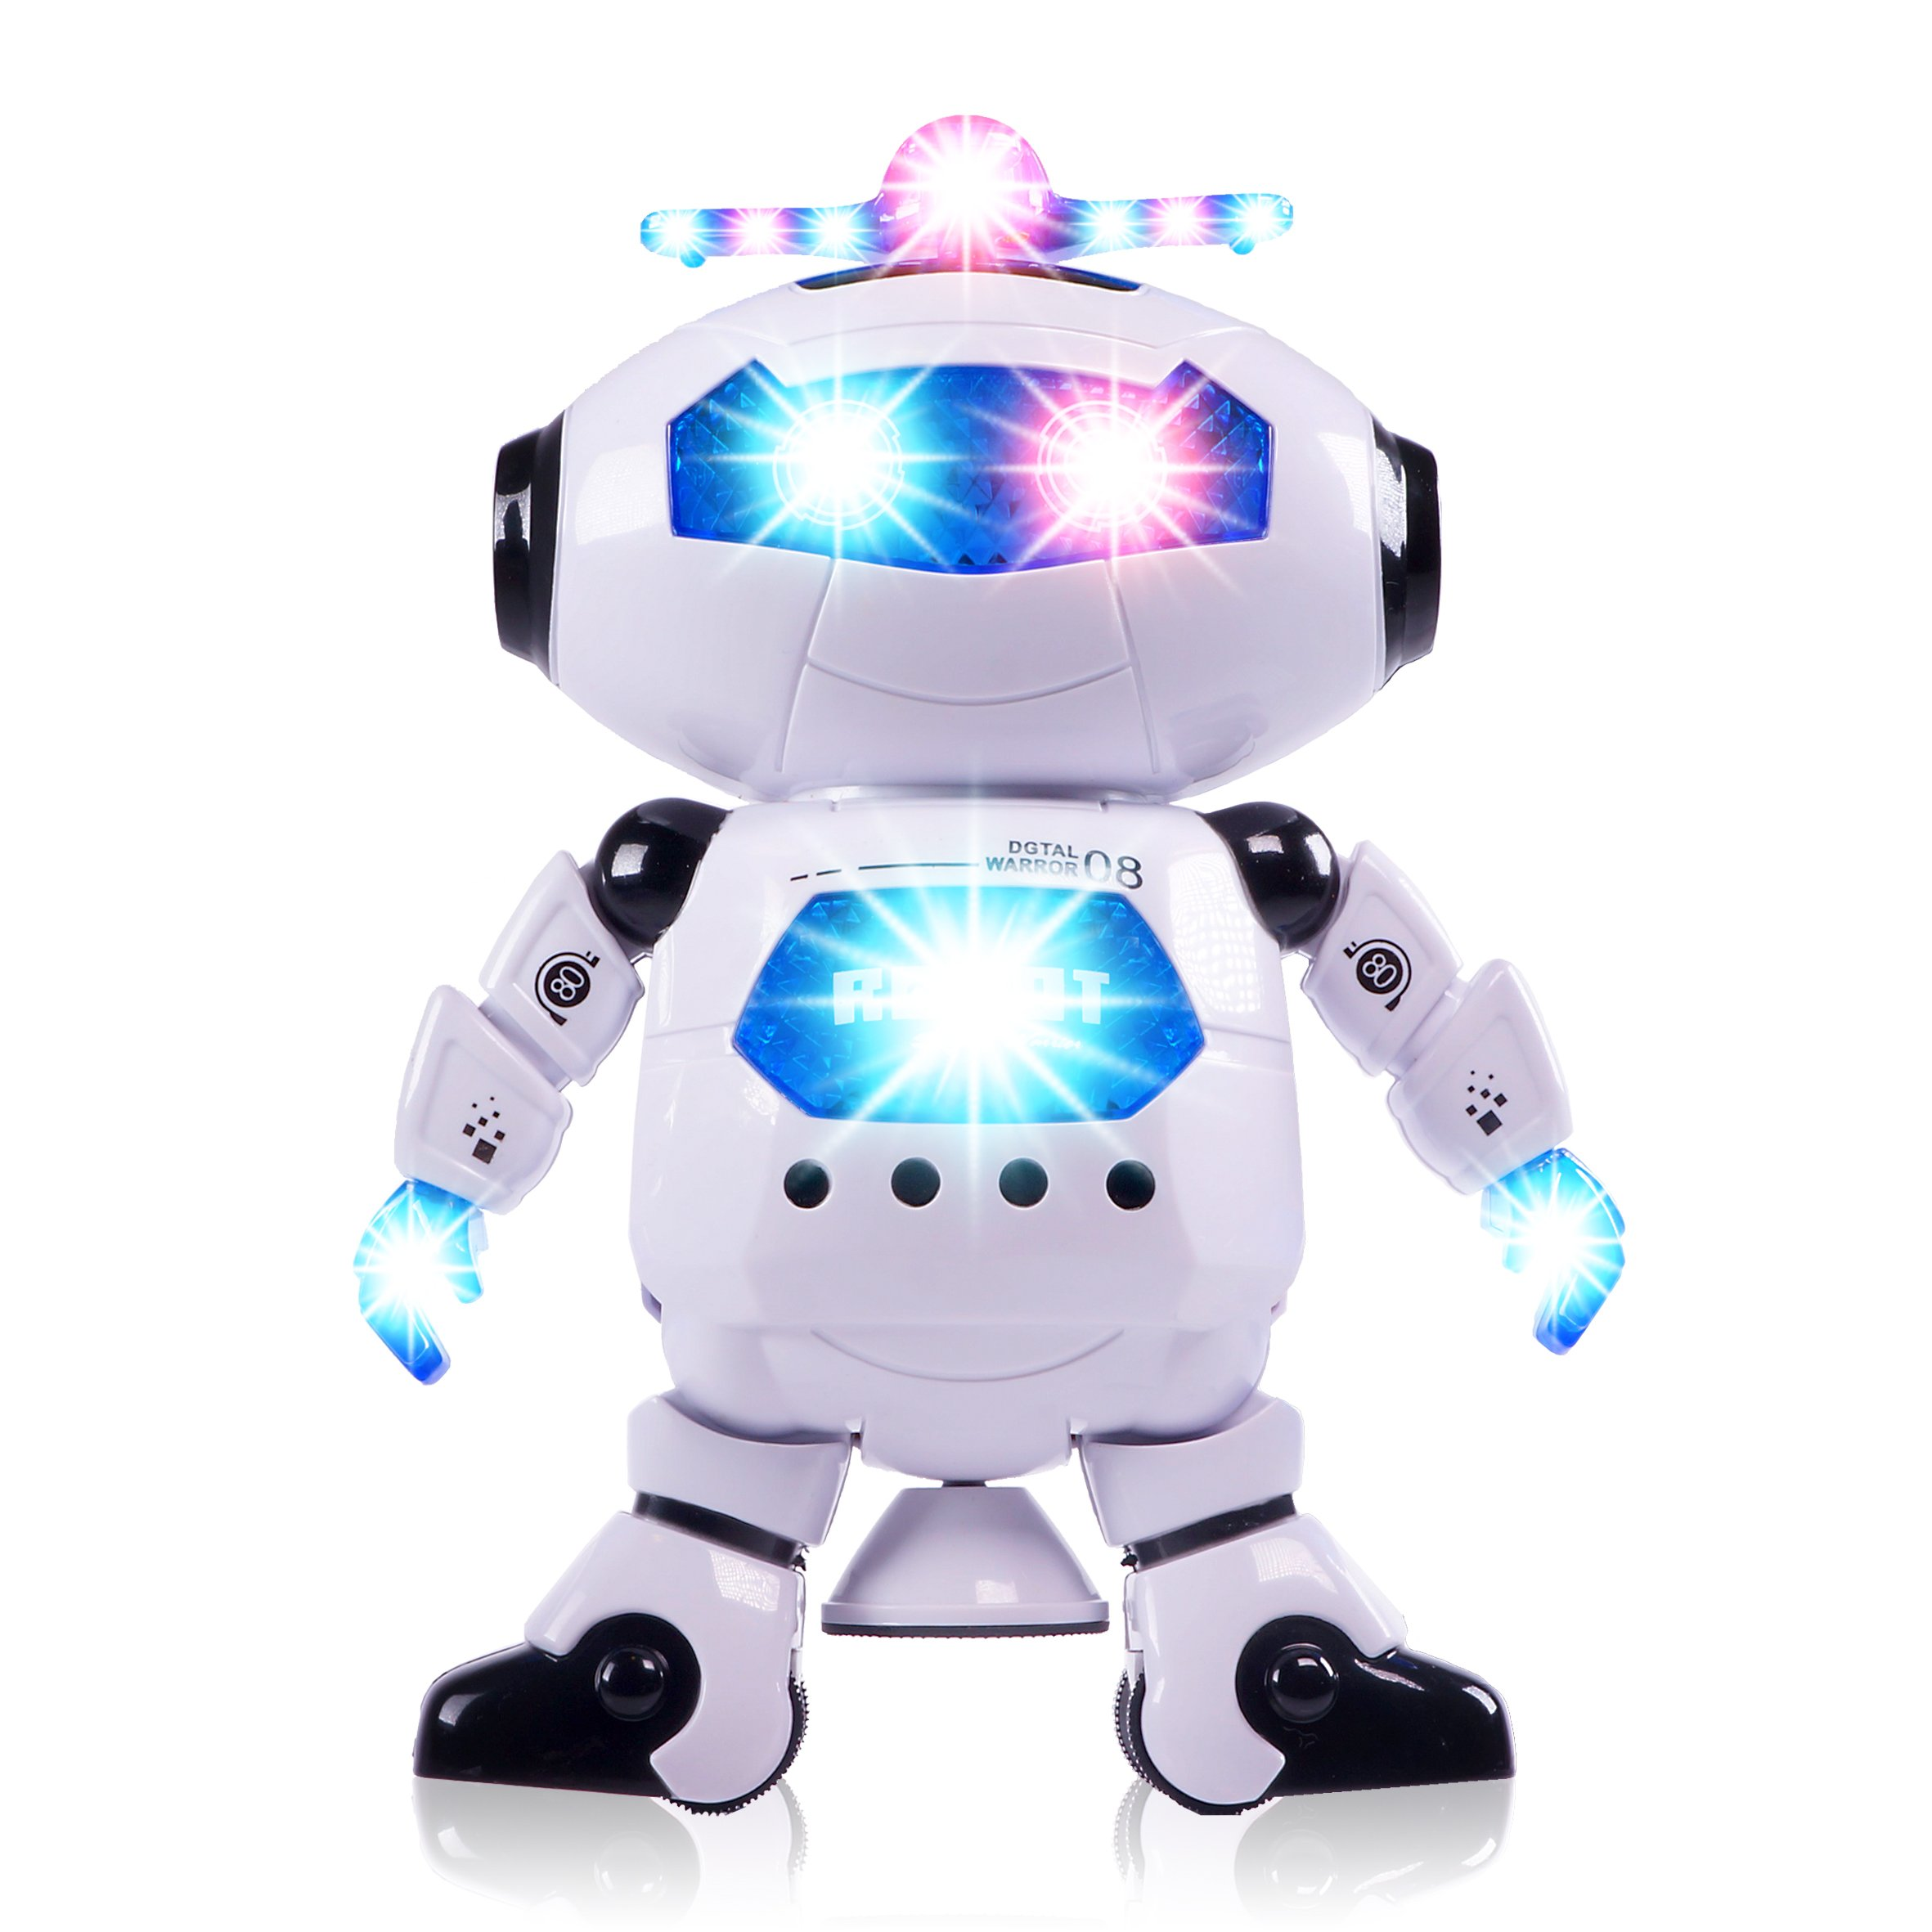 Electronic Toys For Boys : Amazon rc robot for kids realacc usb charging